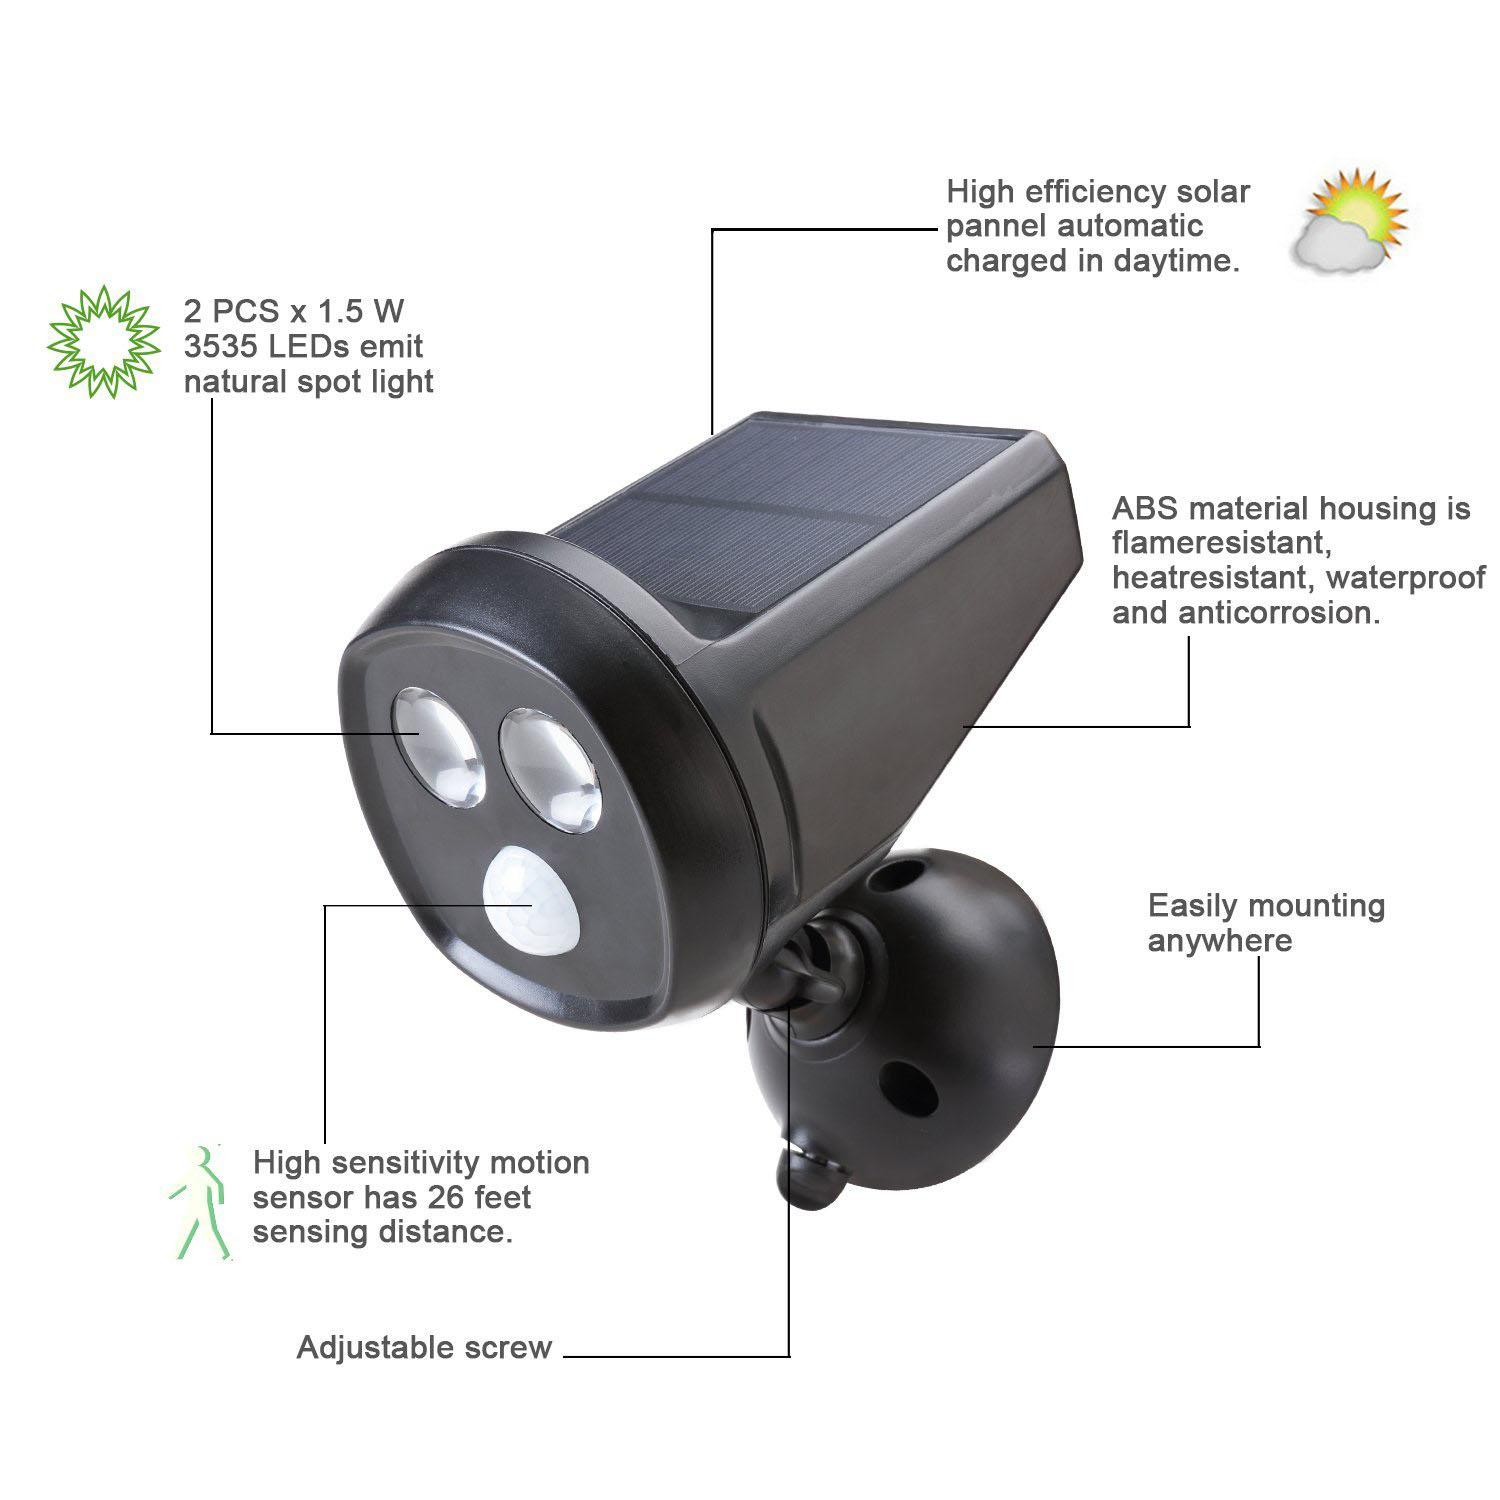 Wholesale outdoor wireless solar powered motion sensor detection led wholesale outdoor wireless solar powered motion sensor detection led landscape security light weatherproof spotlight wall floodlight lamp flood lights aloadofball Image collections